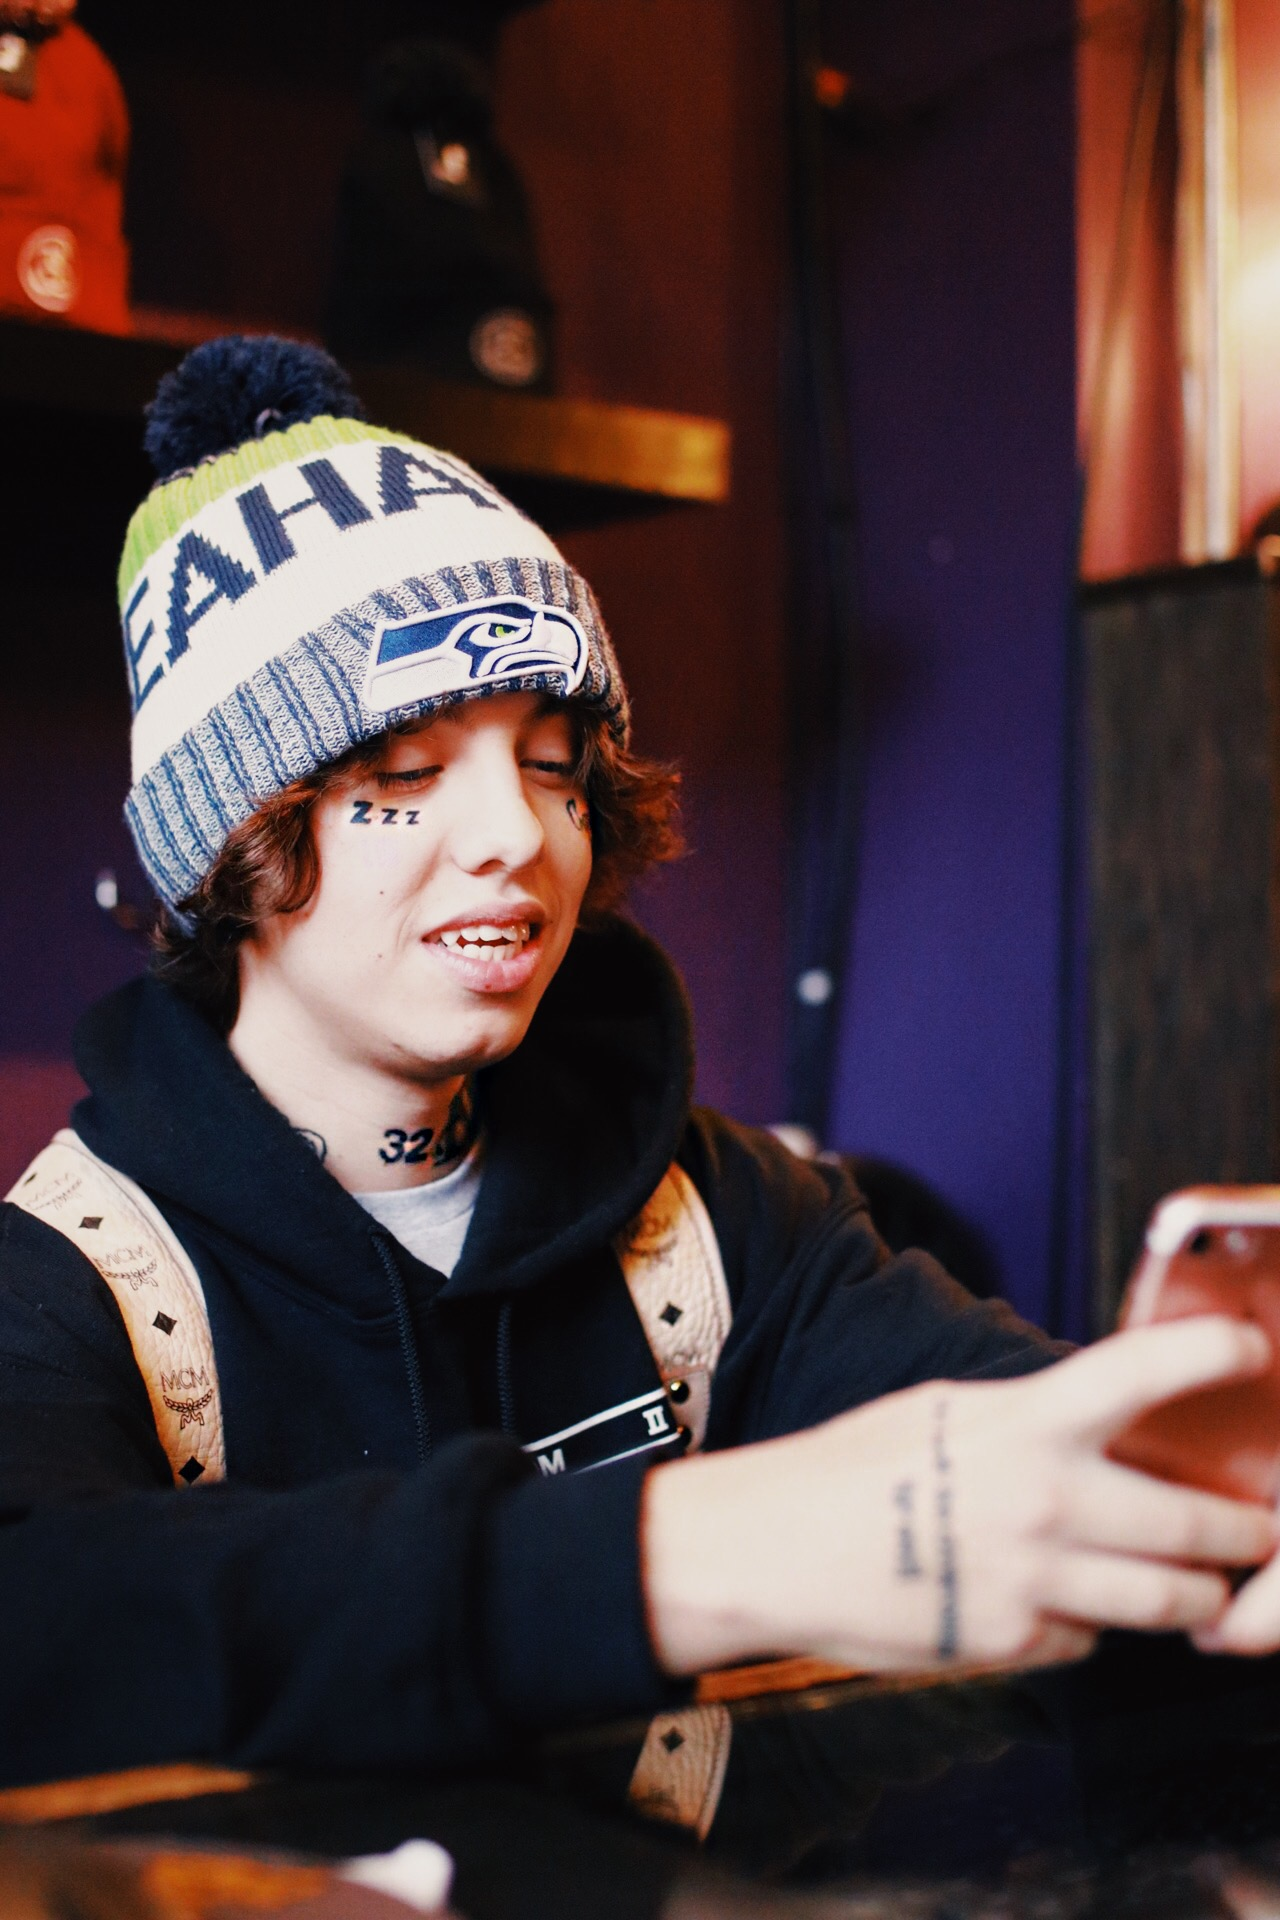 Lil Xan images